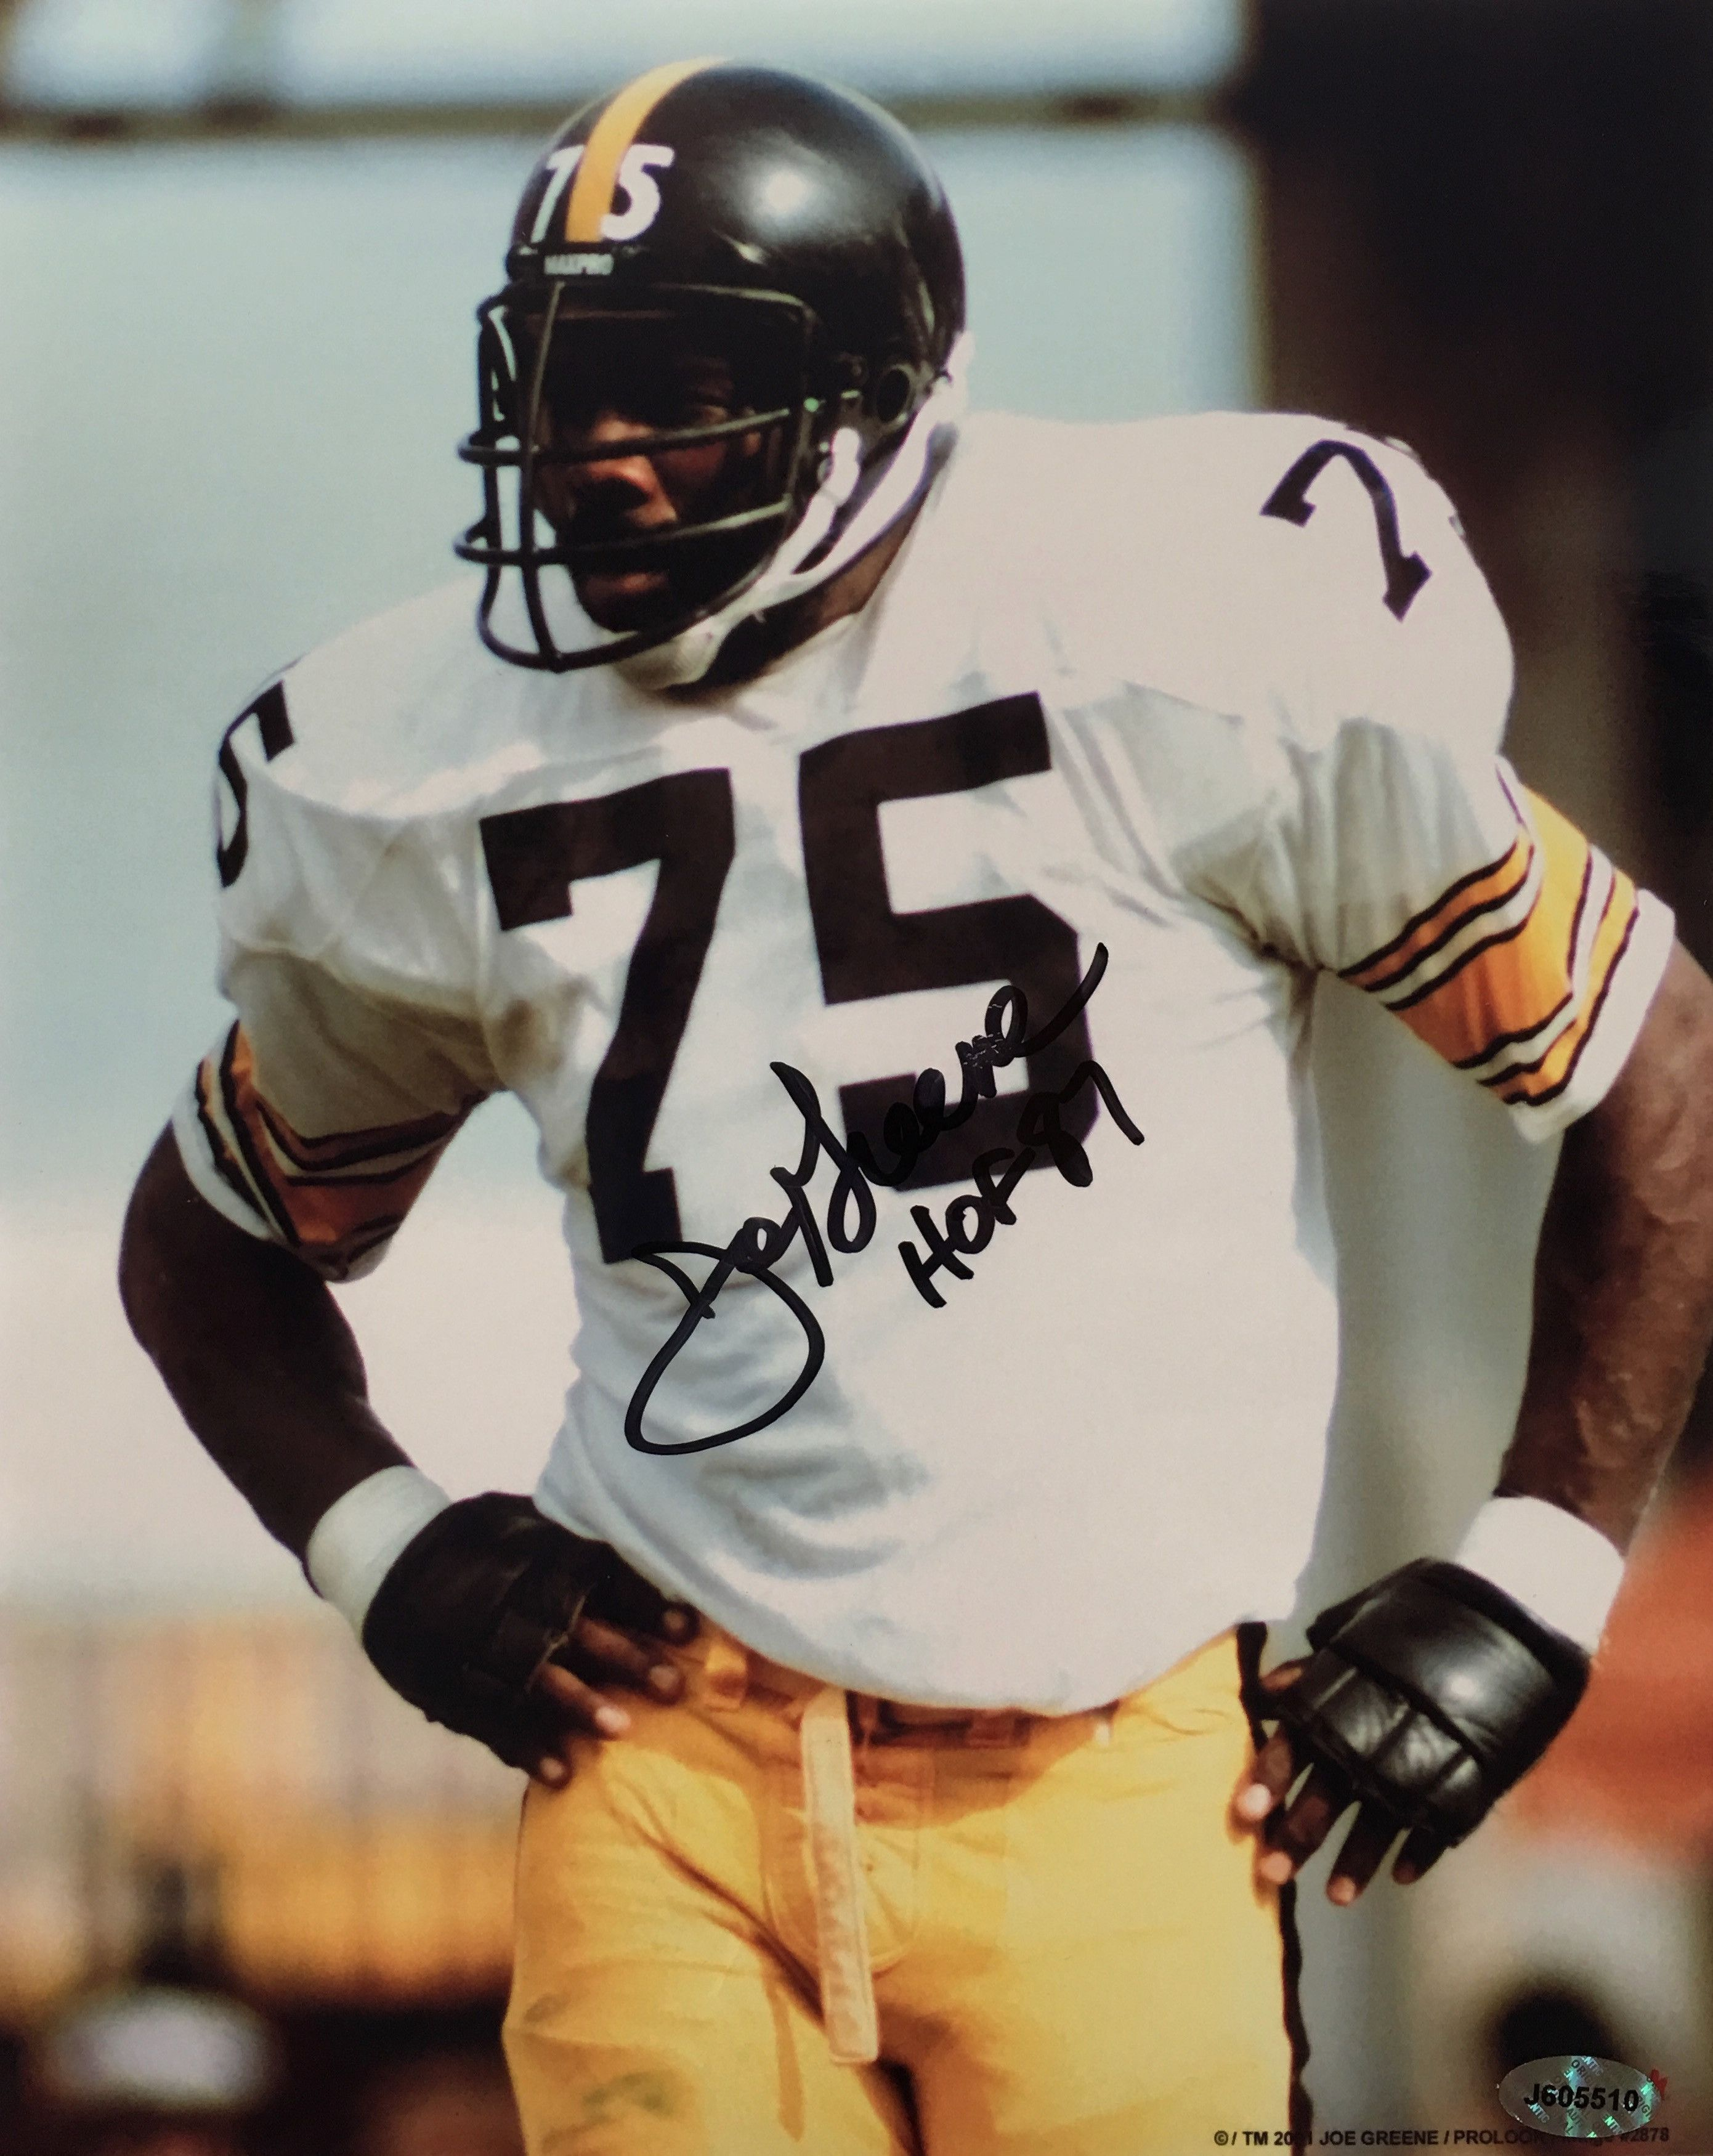 c829b49c452 Beautifully hand-signed 8x10 photo featuring the autograph of the  Pittsburgh Steelers legendary Mean Joe Greene. Joe s autograph is perfectly  written and ...